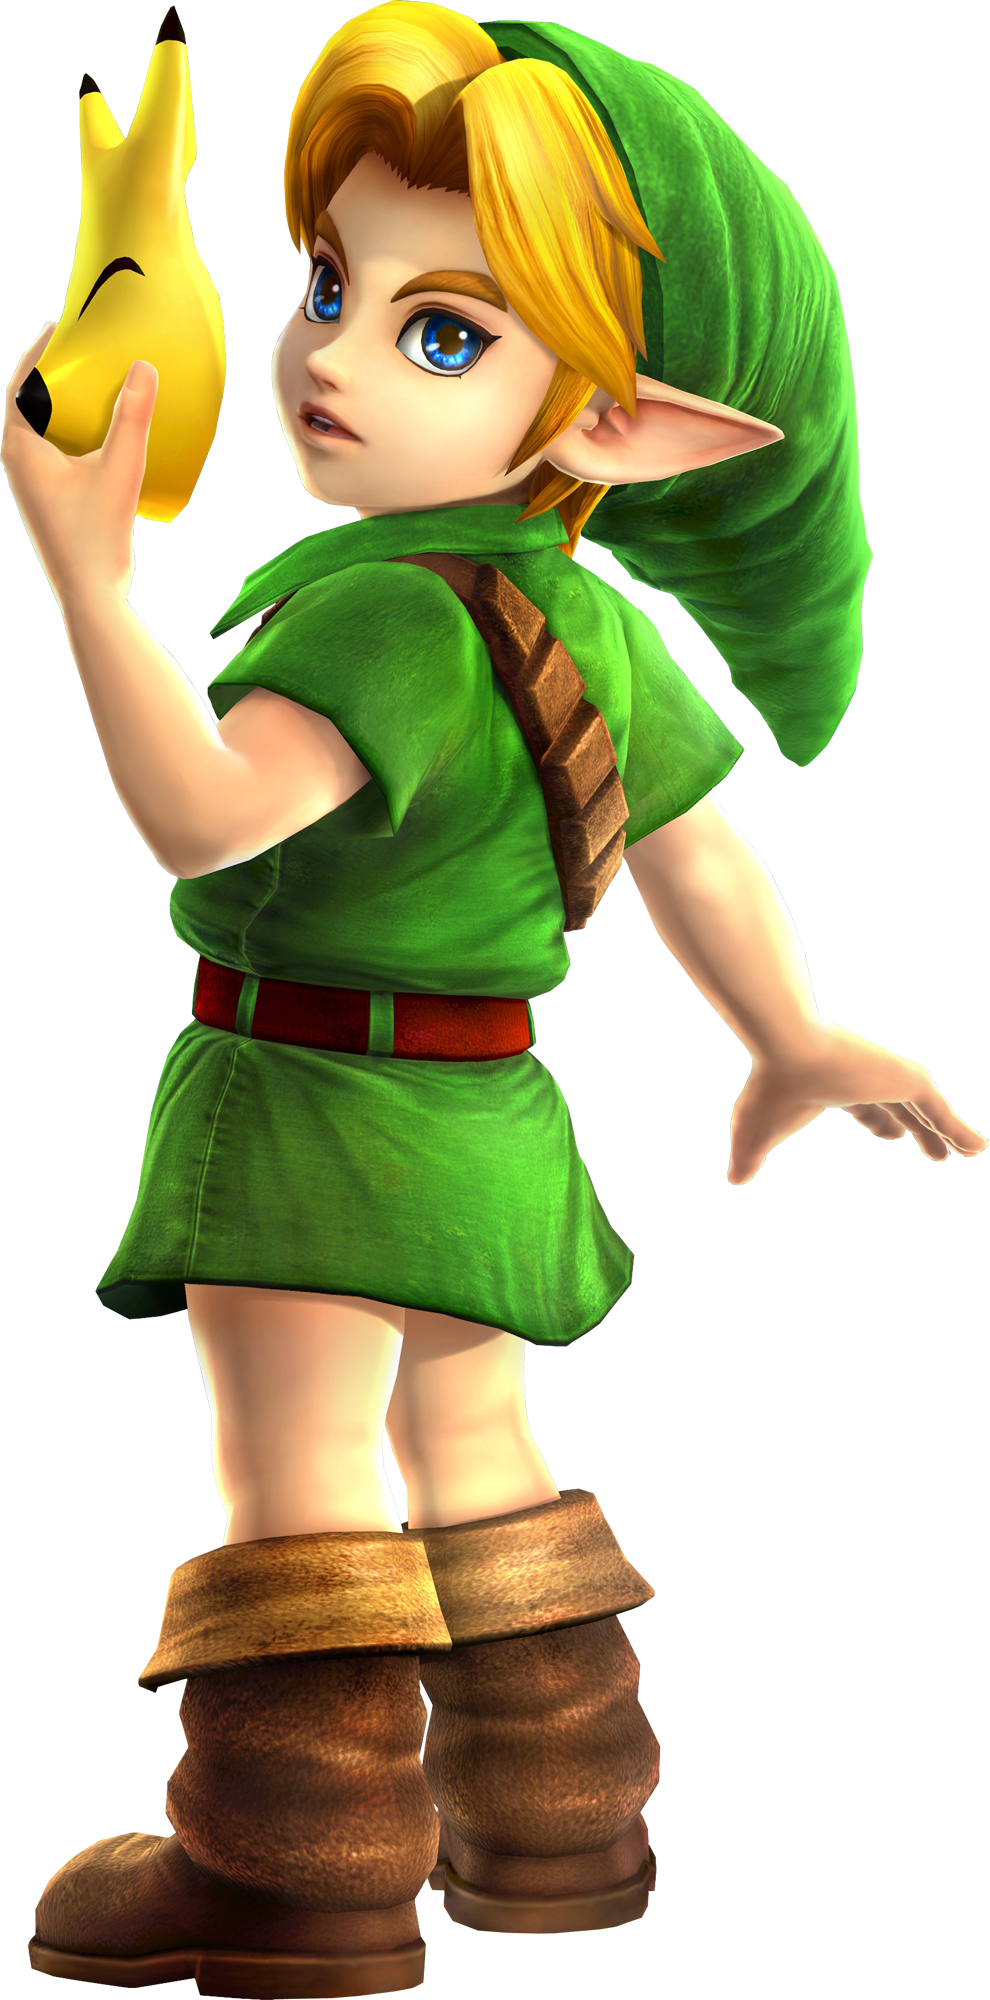 Transparent link child. Image young hyrule warriors